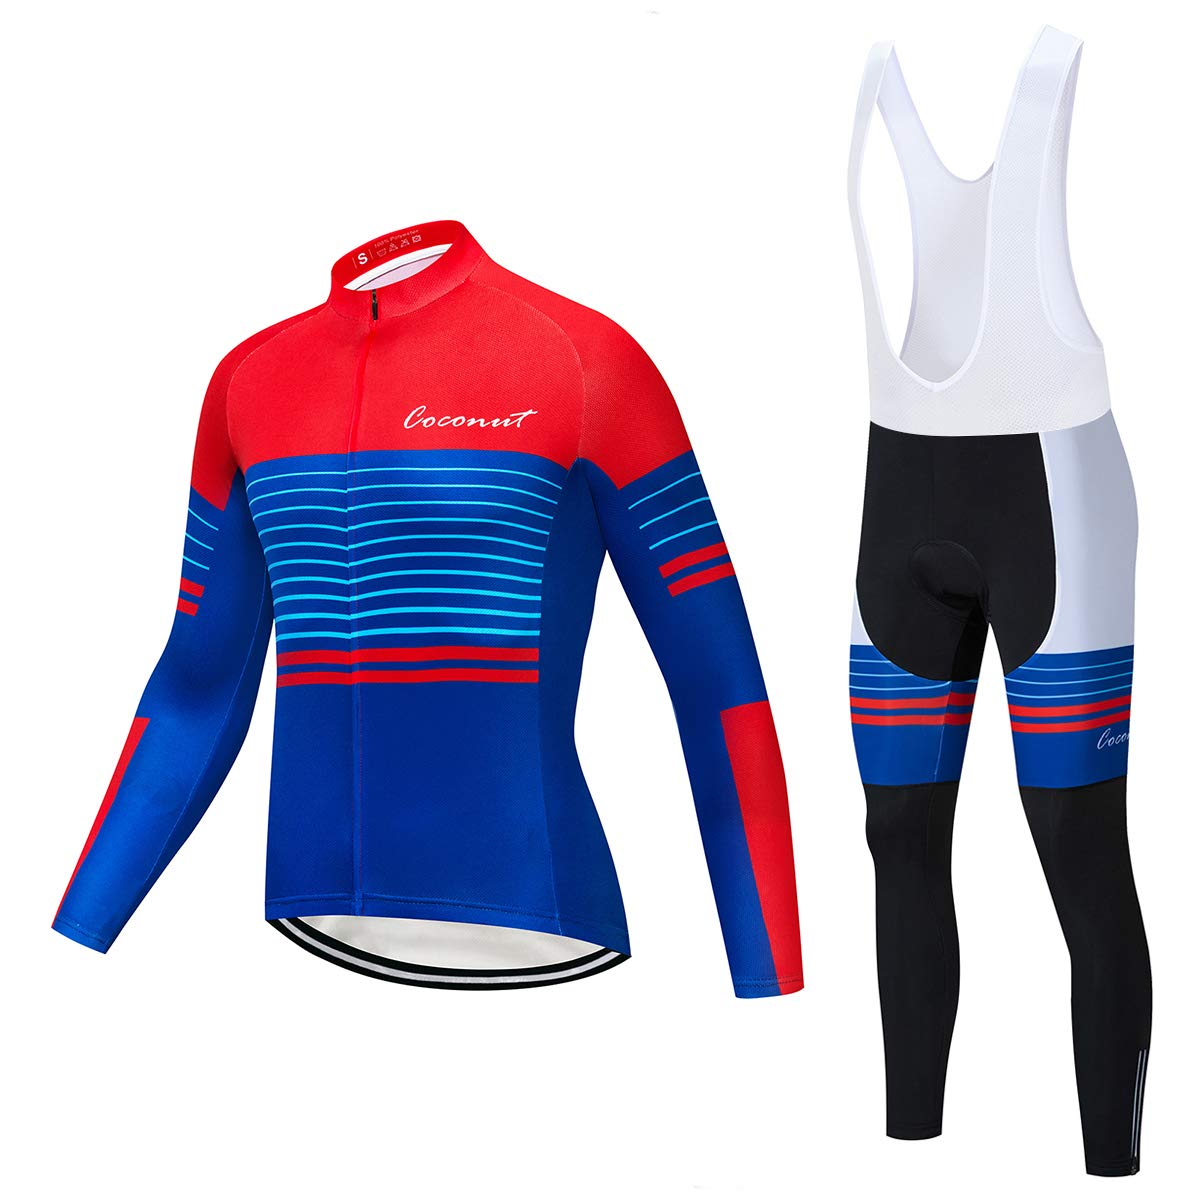 Coconut Ropamo Men's Cycling Jersey Suit Long Sleeve Road Bike Jersey Cycling Sets Tights with Padded (Medium, Red&Blue) by Coconut Ropamo